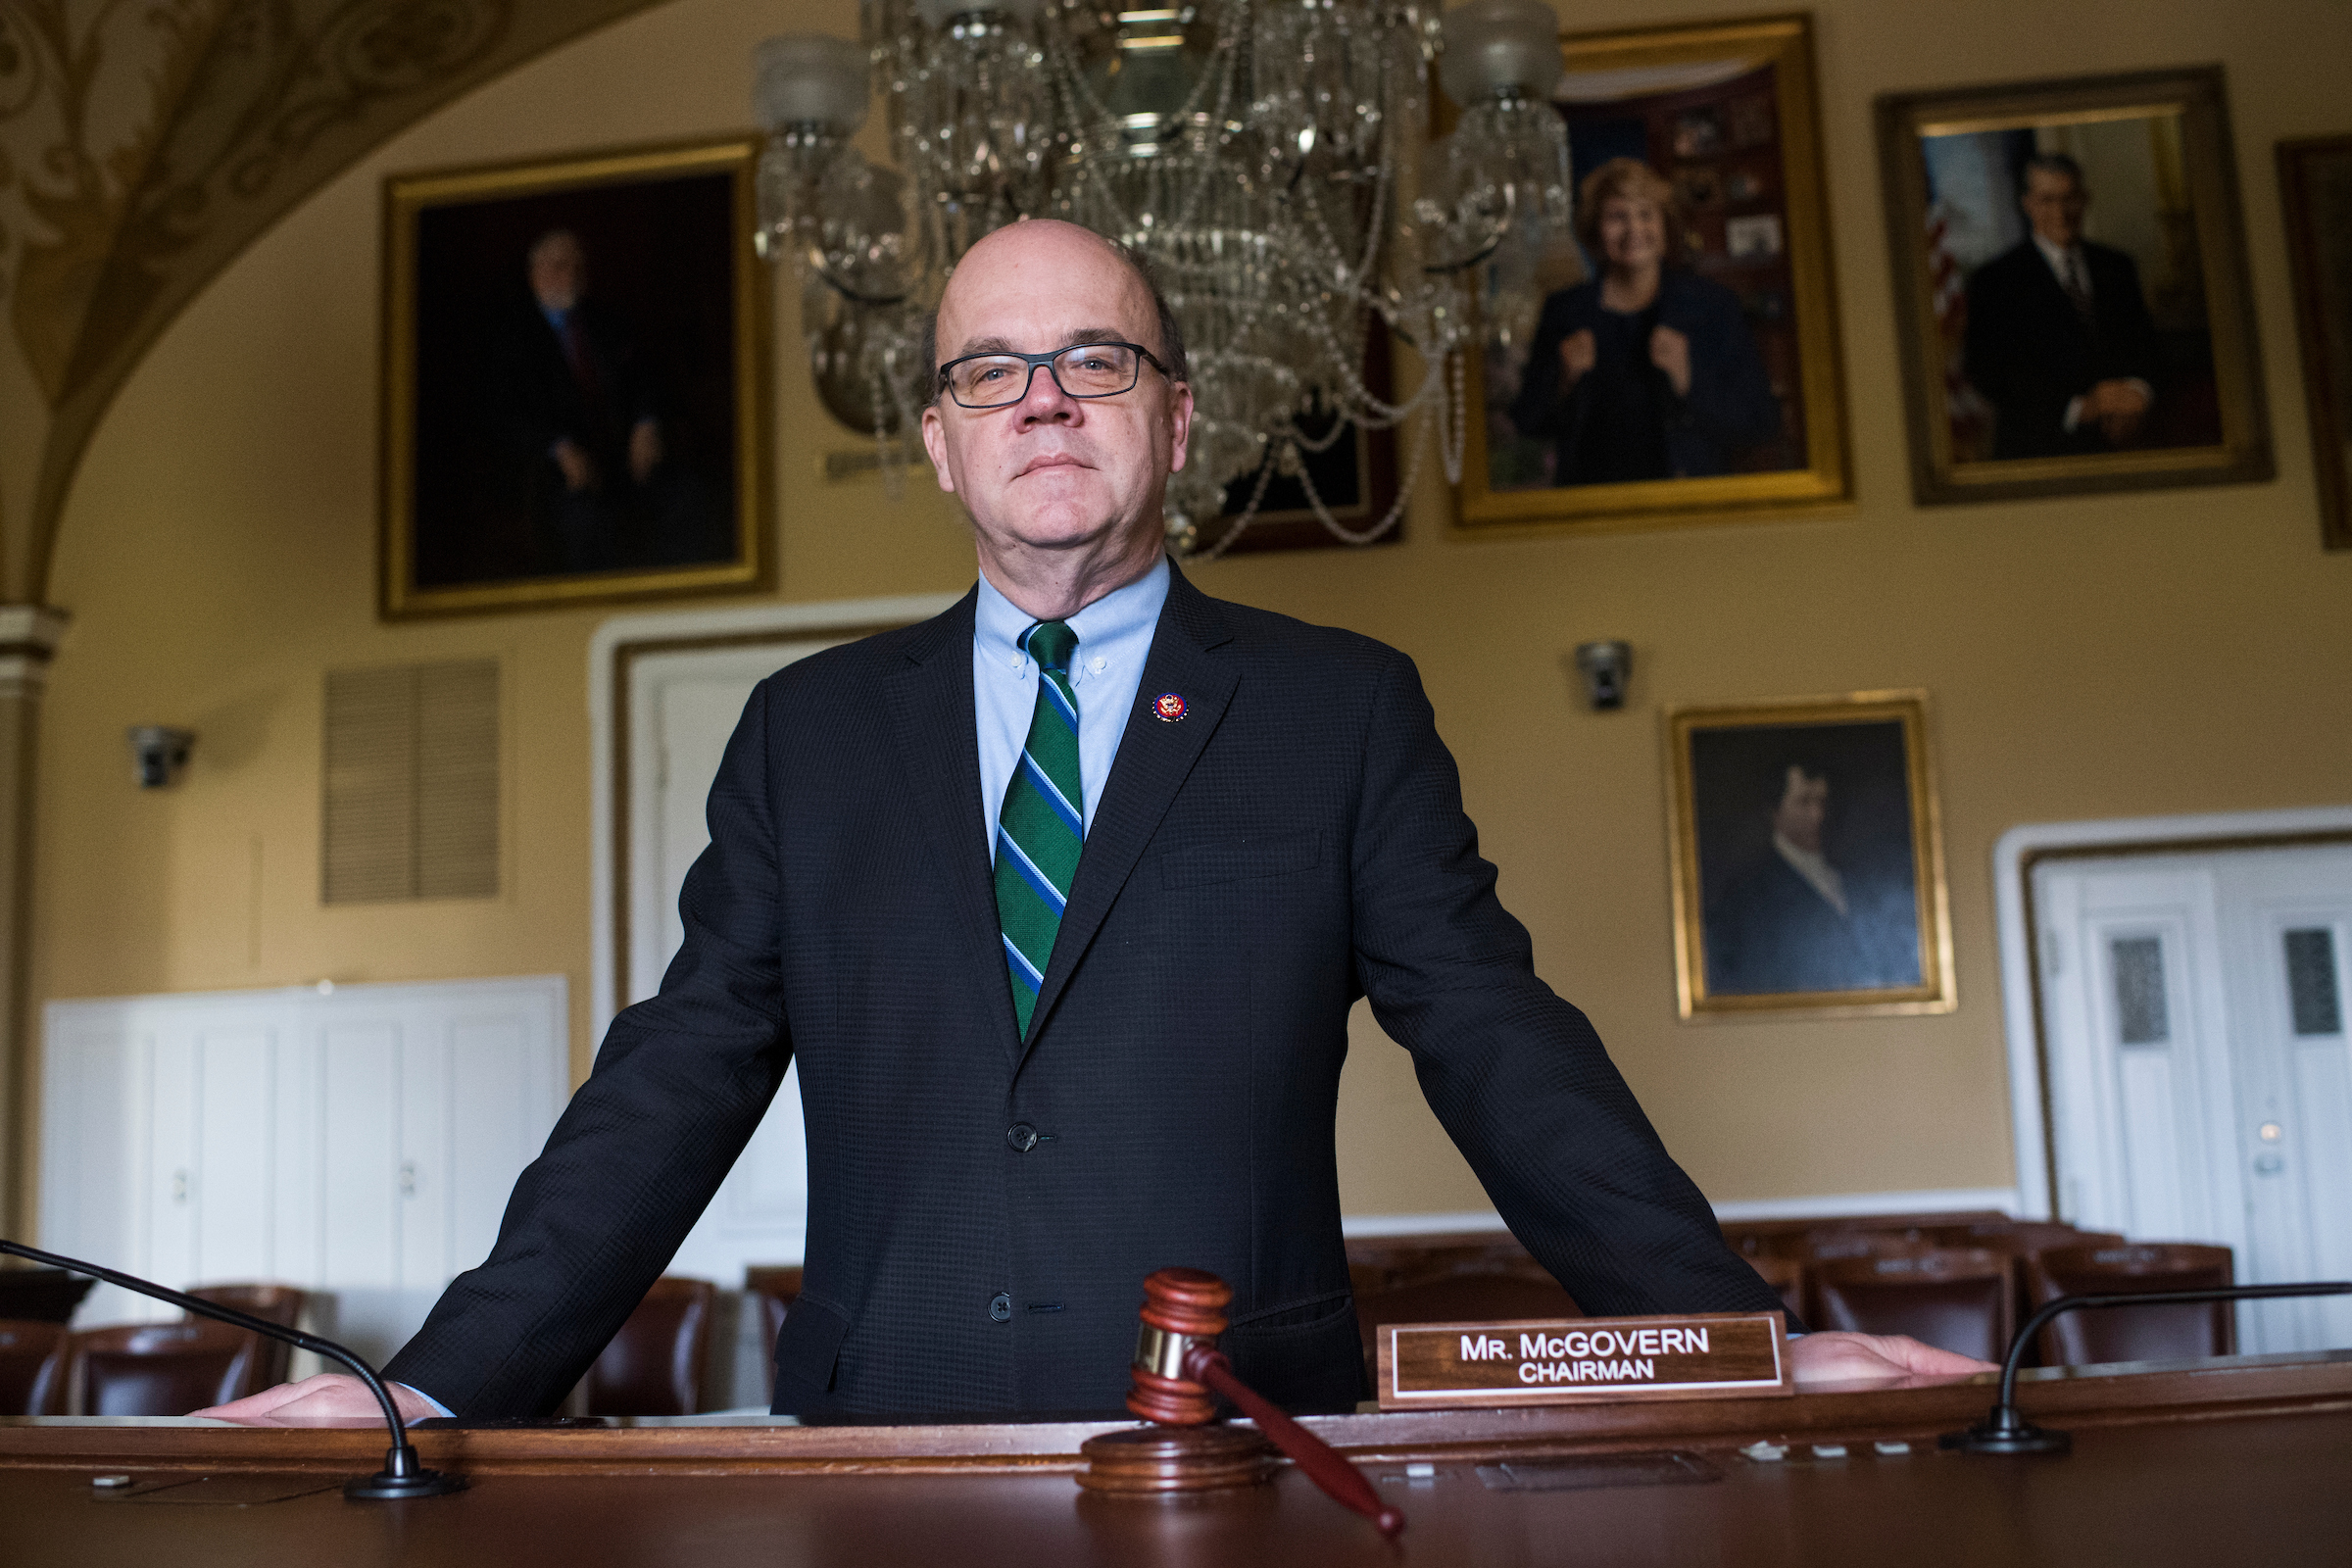 UNITED STATES - JANUARY 07: House Rules Committee Chairman Jim McGovern, D-Mass., poses for a photo before an interview by CQ Roll Call in the Capitol on January 7, 2019. The gavel was his father, Walter's, who was president of the Worcester County Package Store Association. (Photo By Tom Williams/CQ Roll Call)